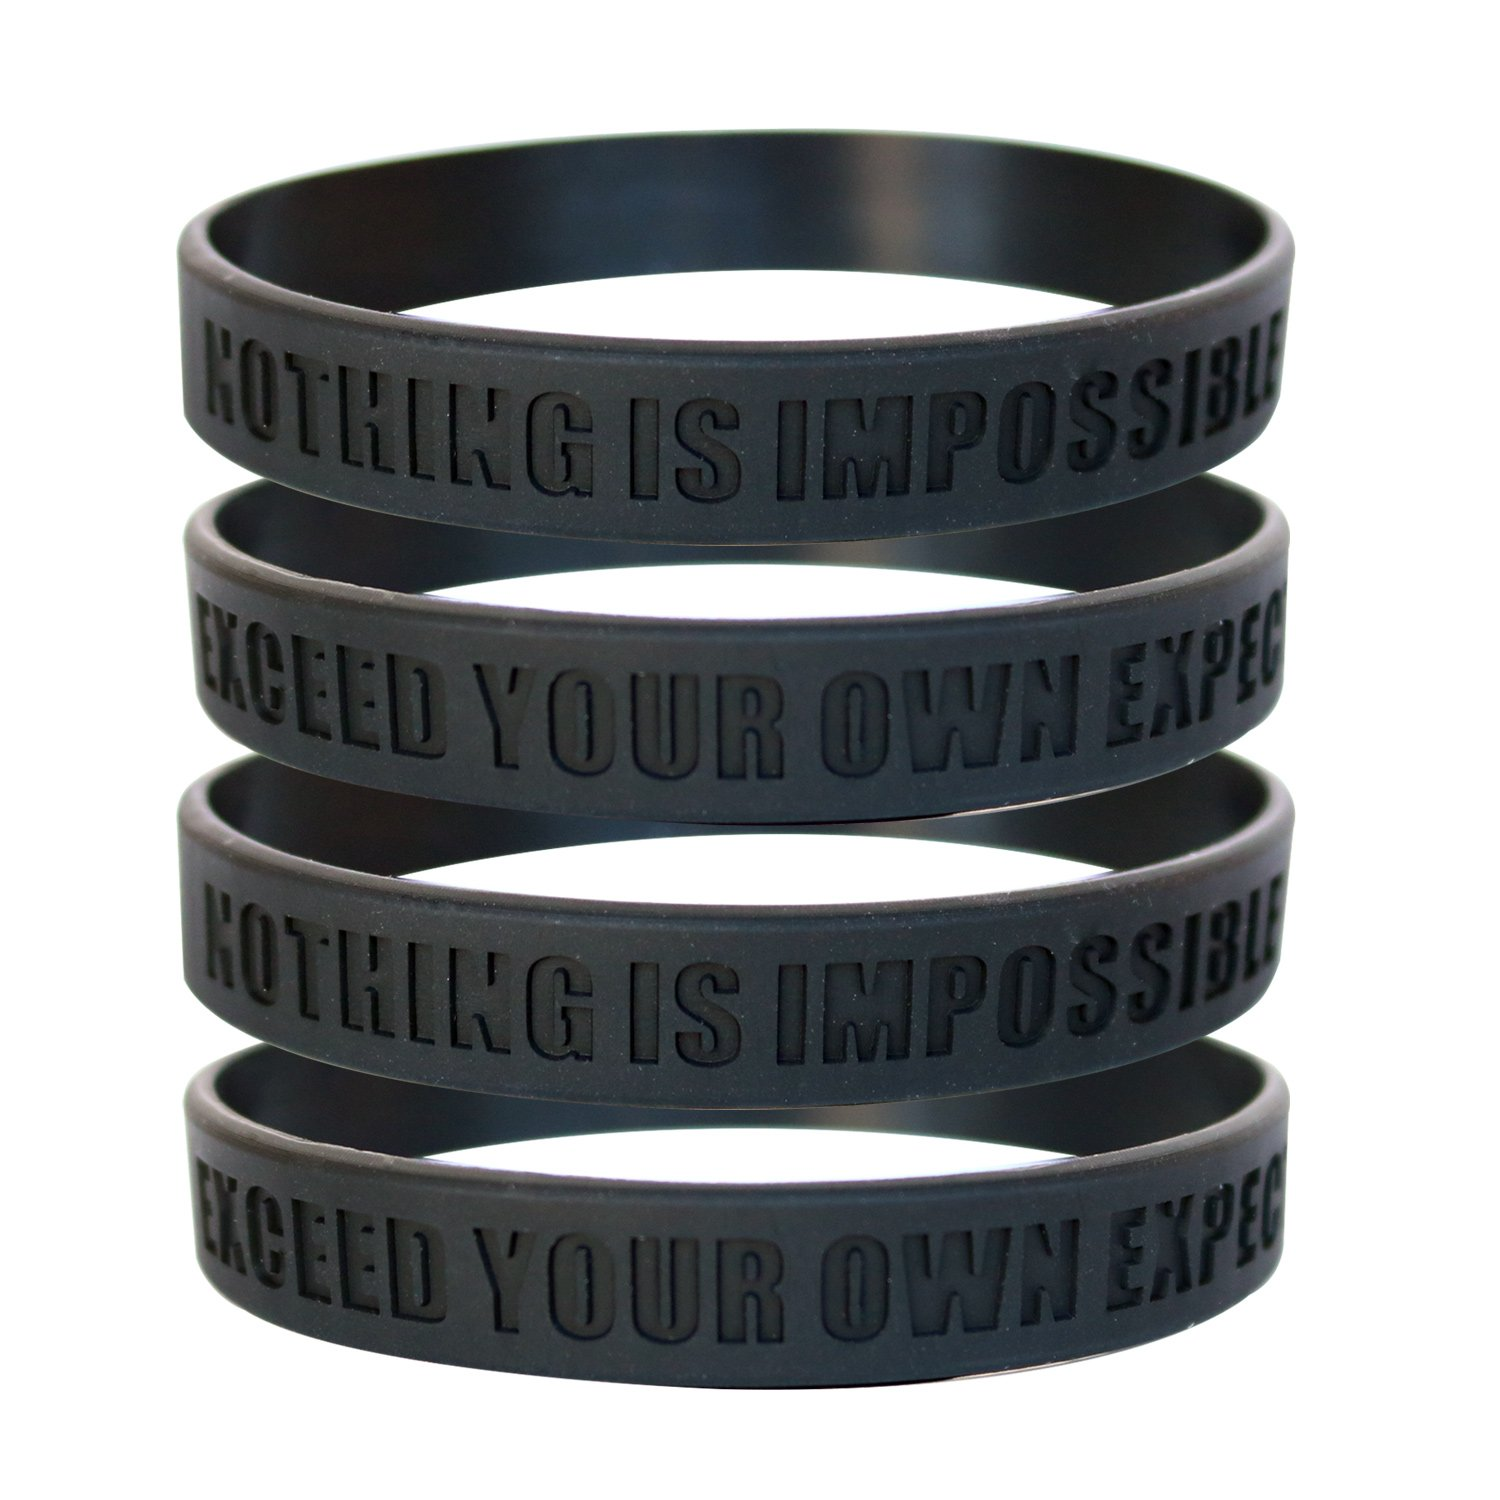 Inkstone Basketball Silicone Wristbands with Motivational Sayings 6-Pack Basketball Bracelets Jewelry Gifts